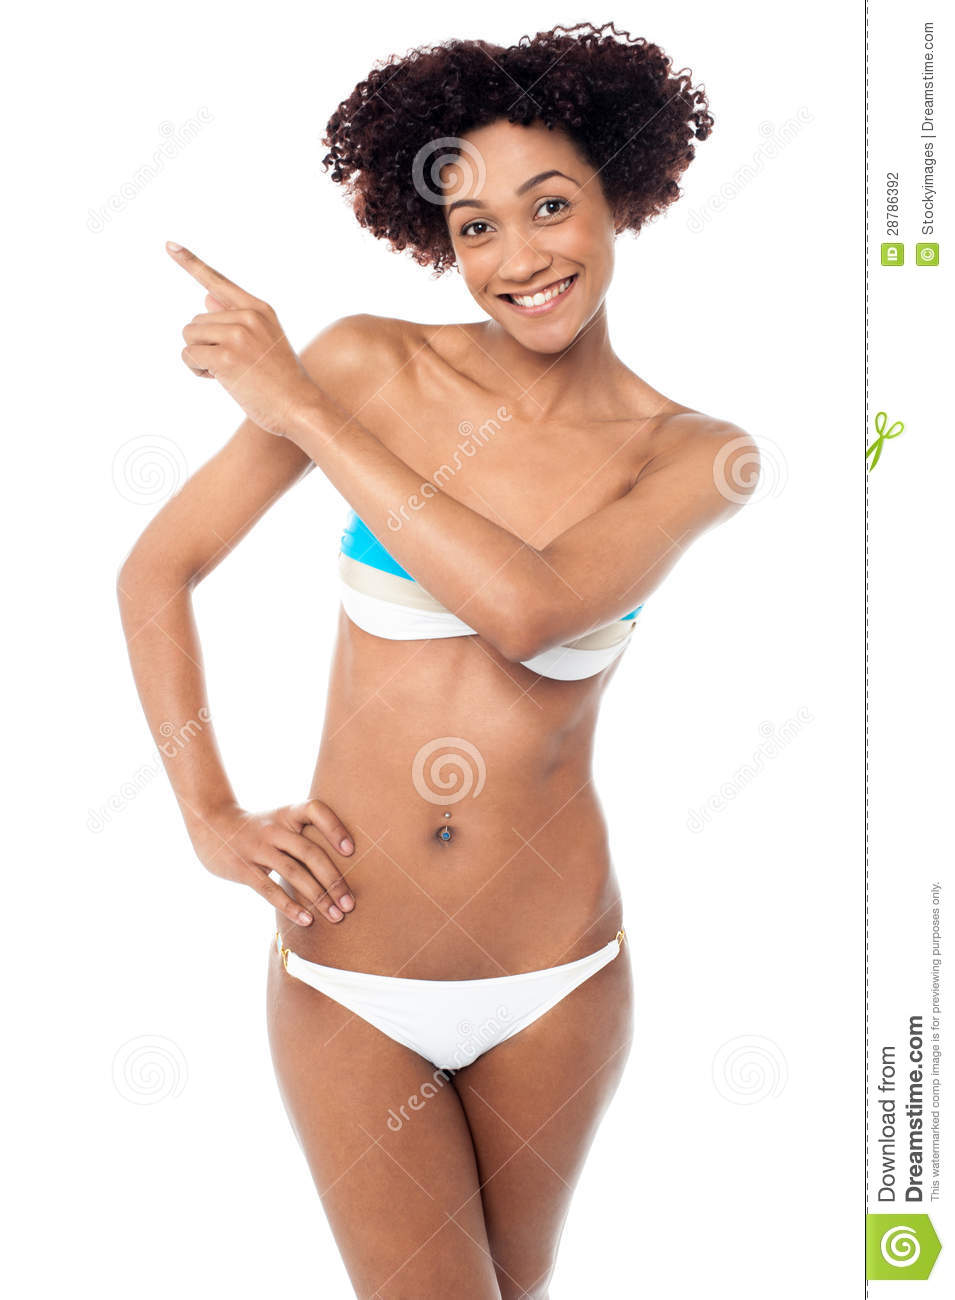 Sexy Woman With Curvy Body Pointing Sideways Stock ...